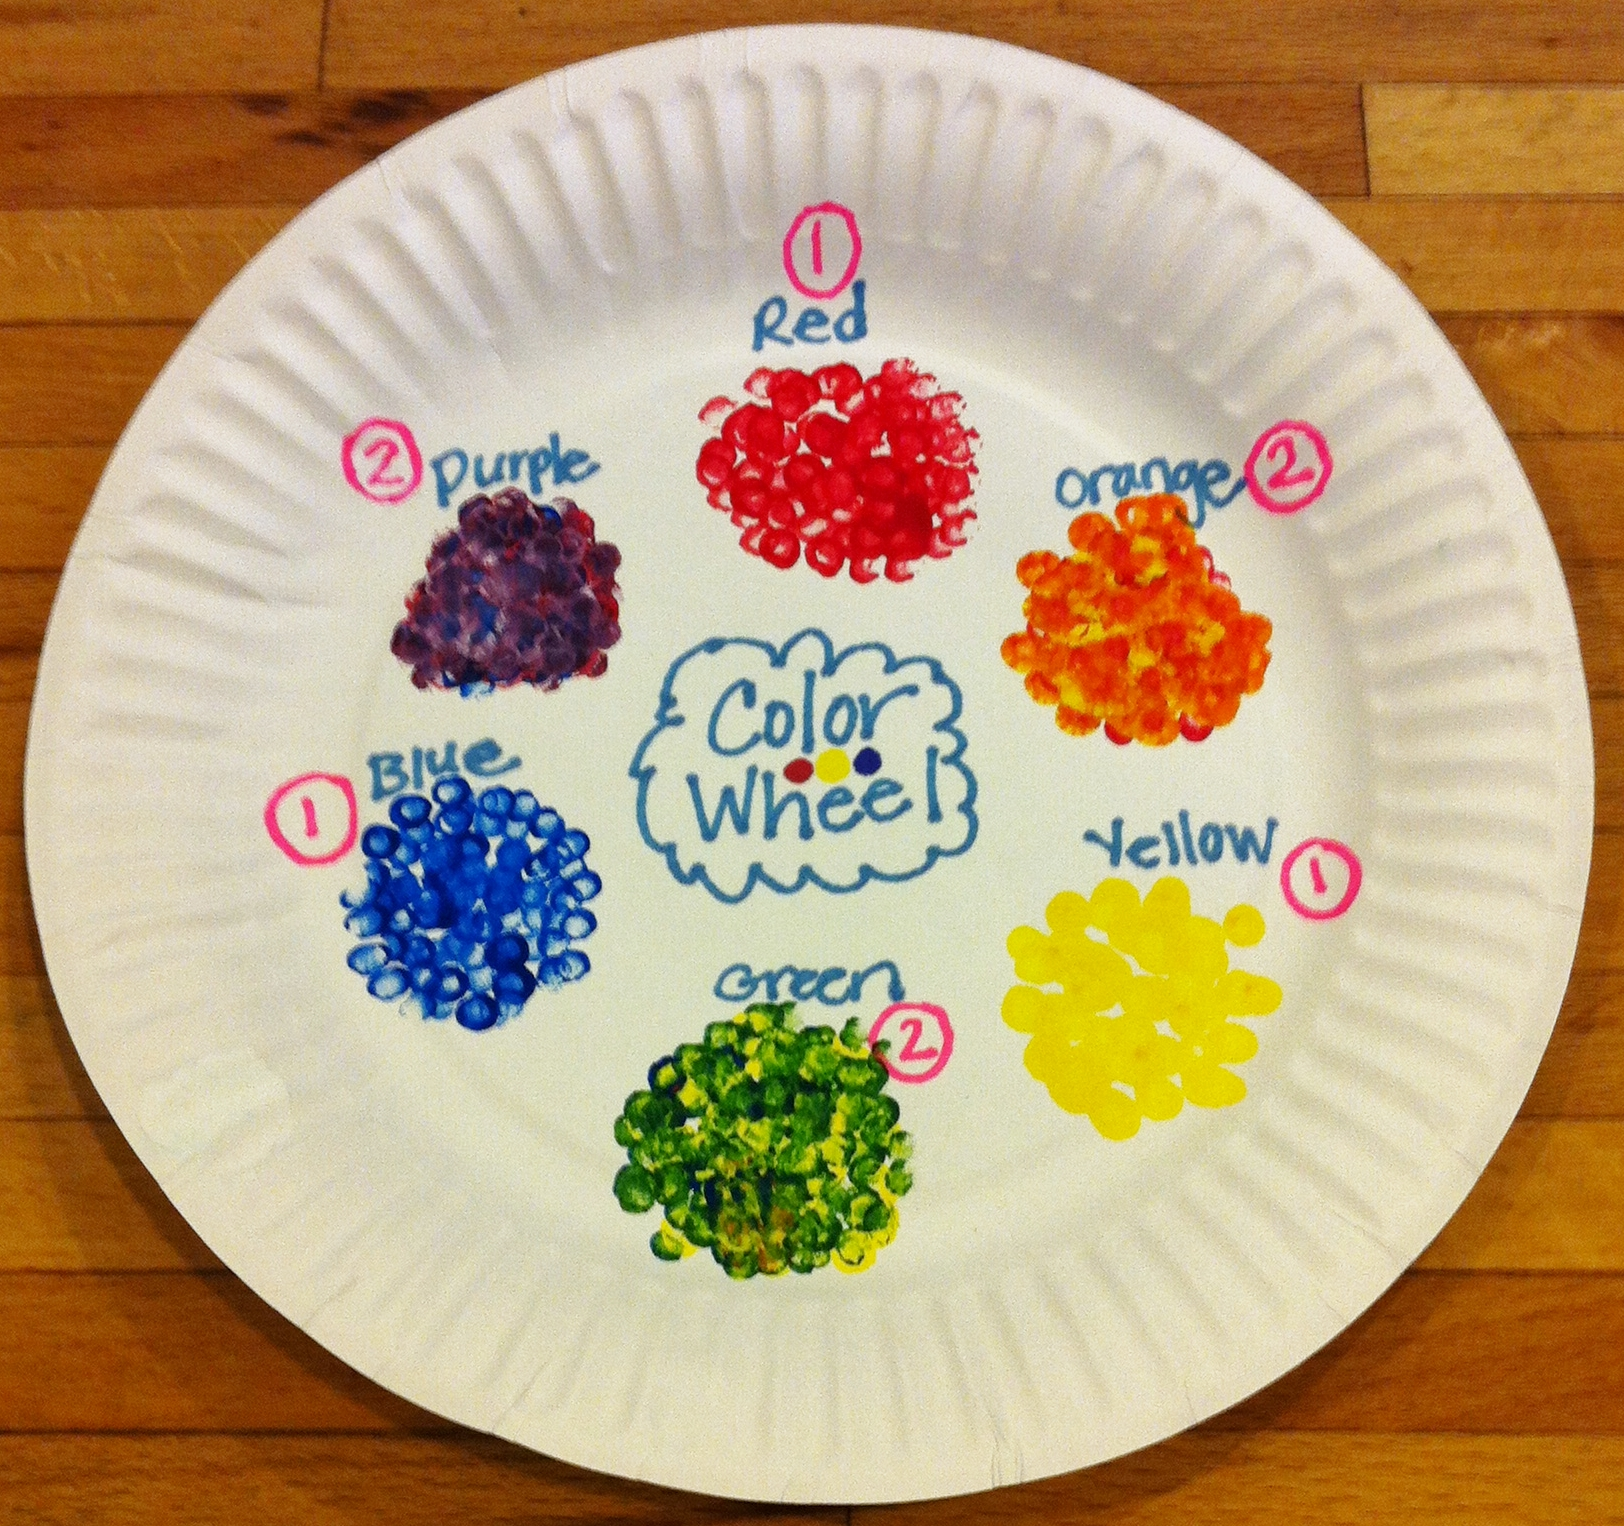 Color wheel art projects for kids - Paper Plate Color Wheel Art For Kids